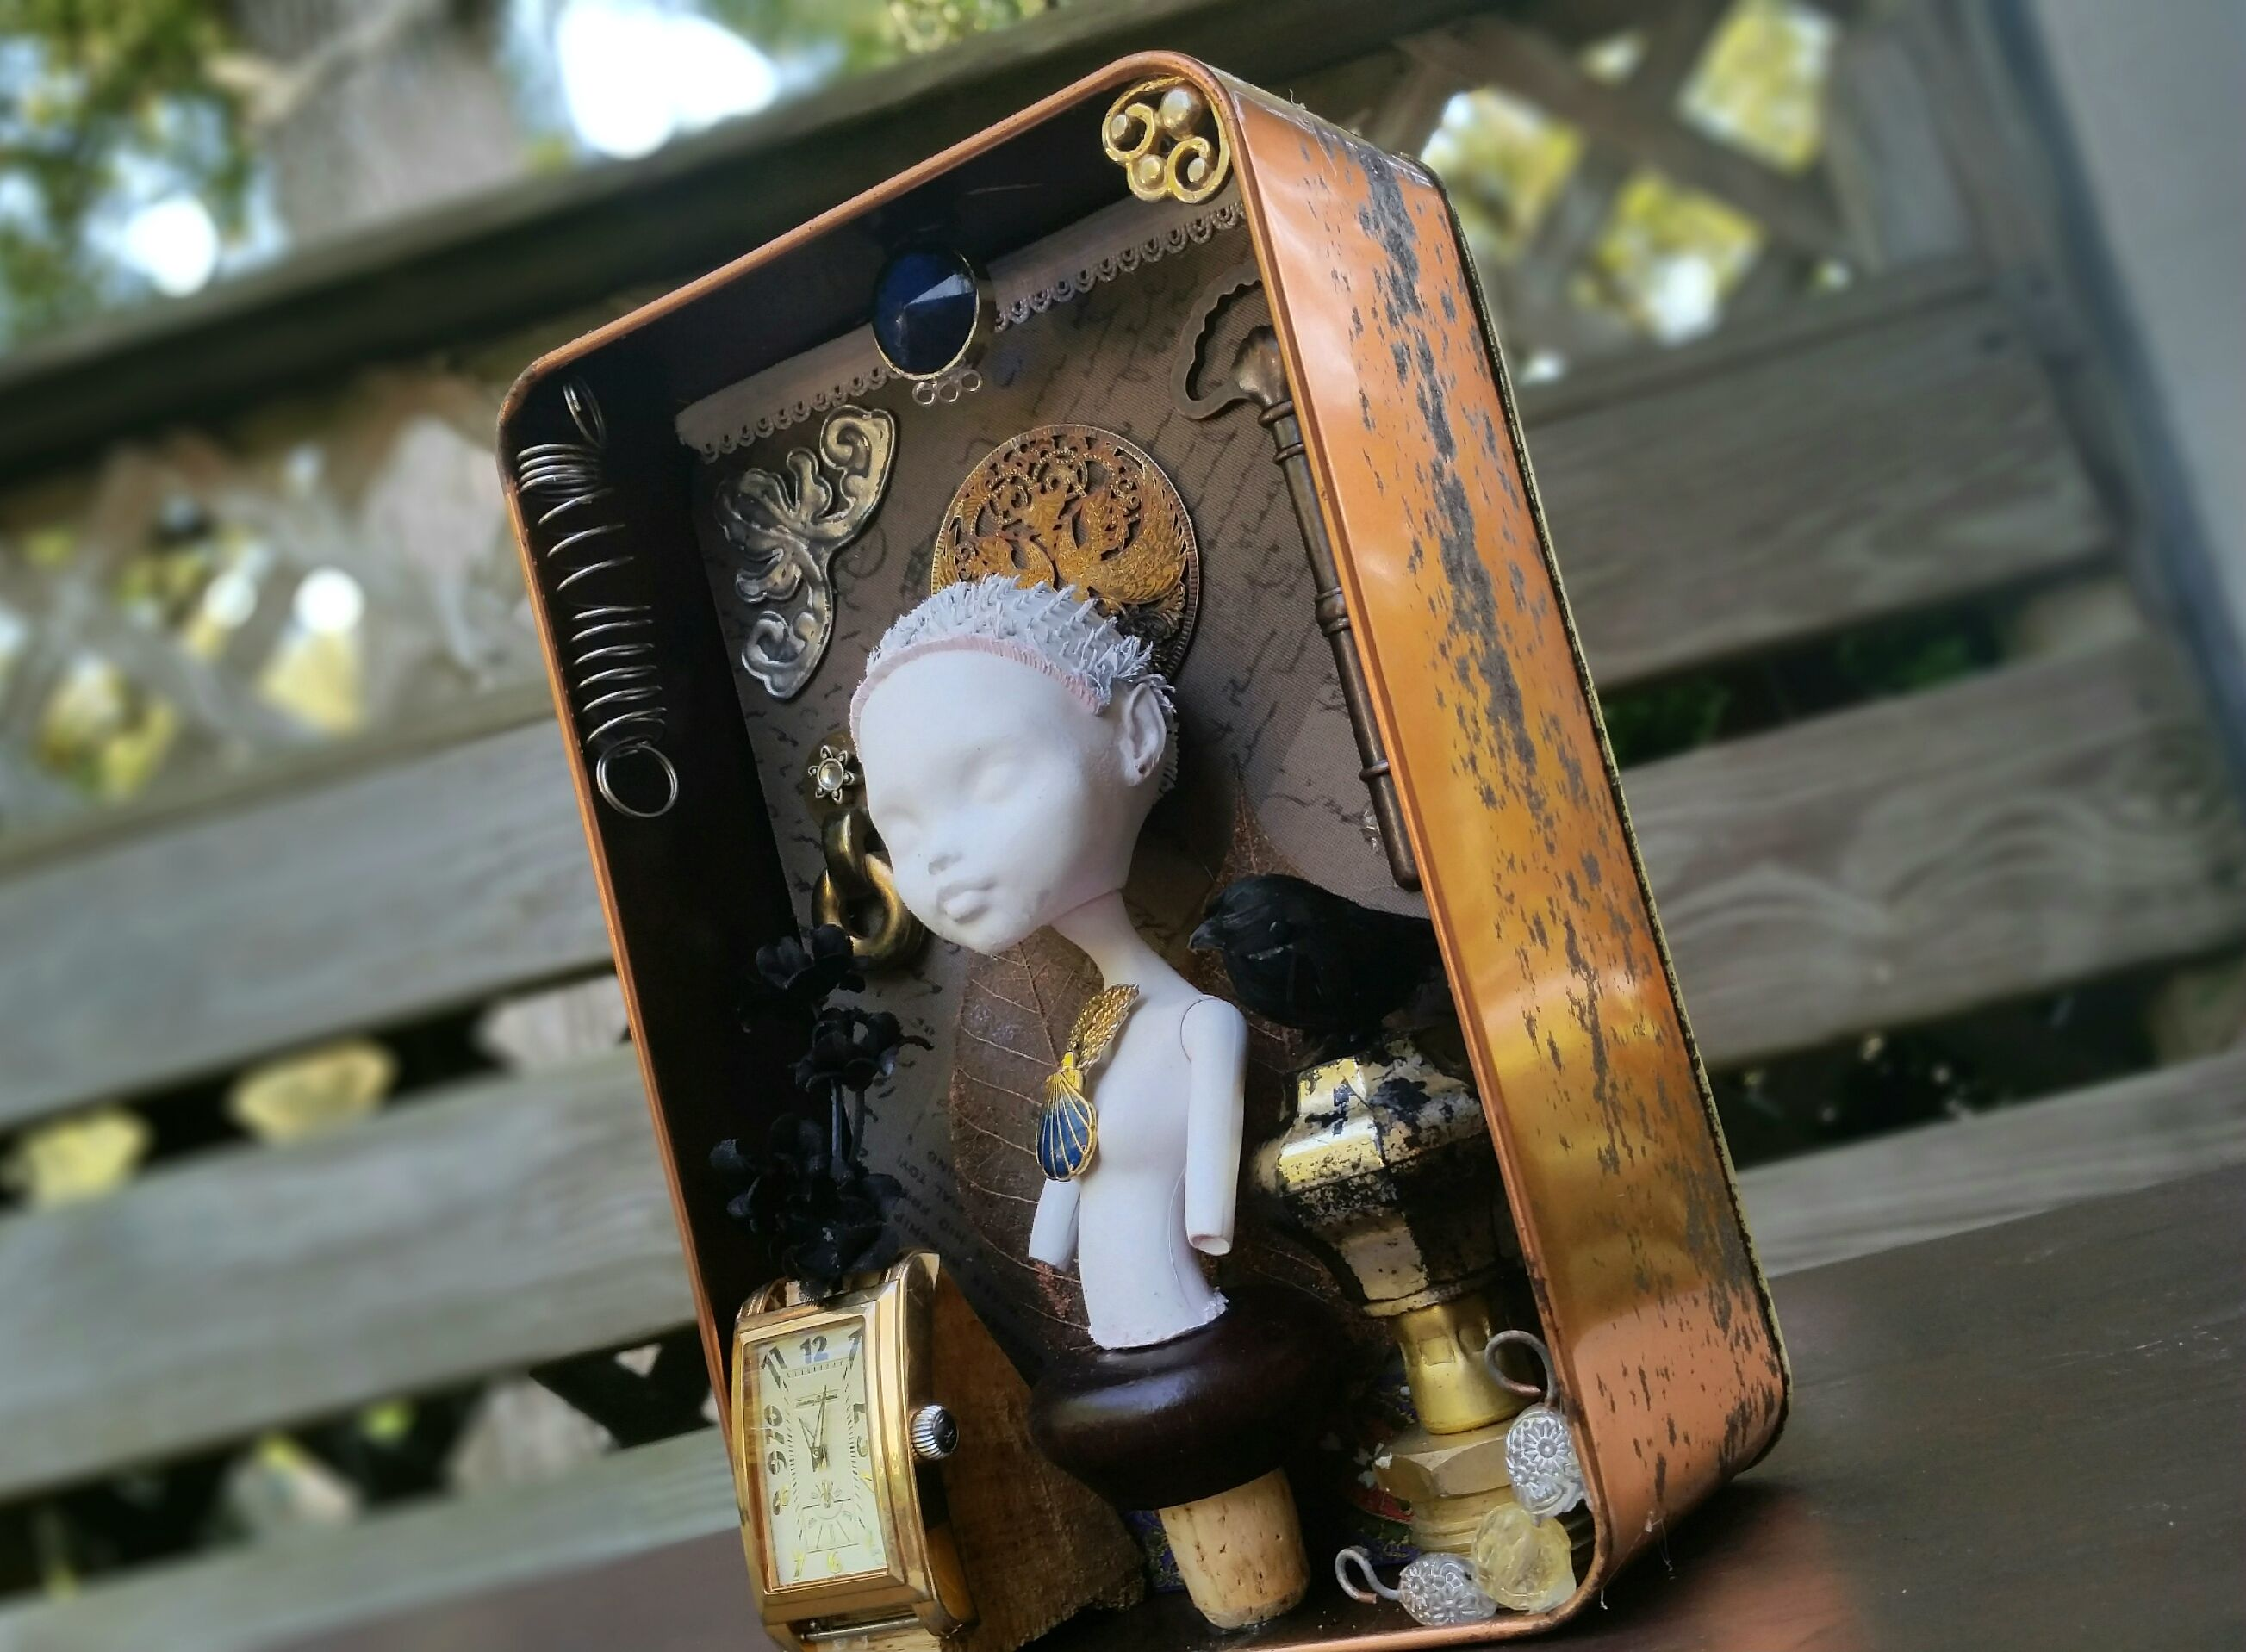 finished assemblage piece, a bust of a doll with a semi-steampunk aesthetic